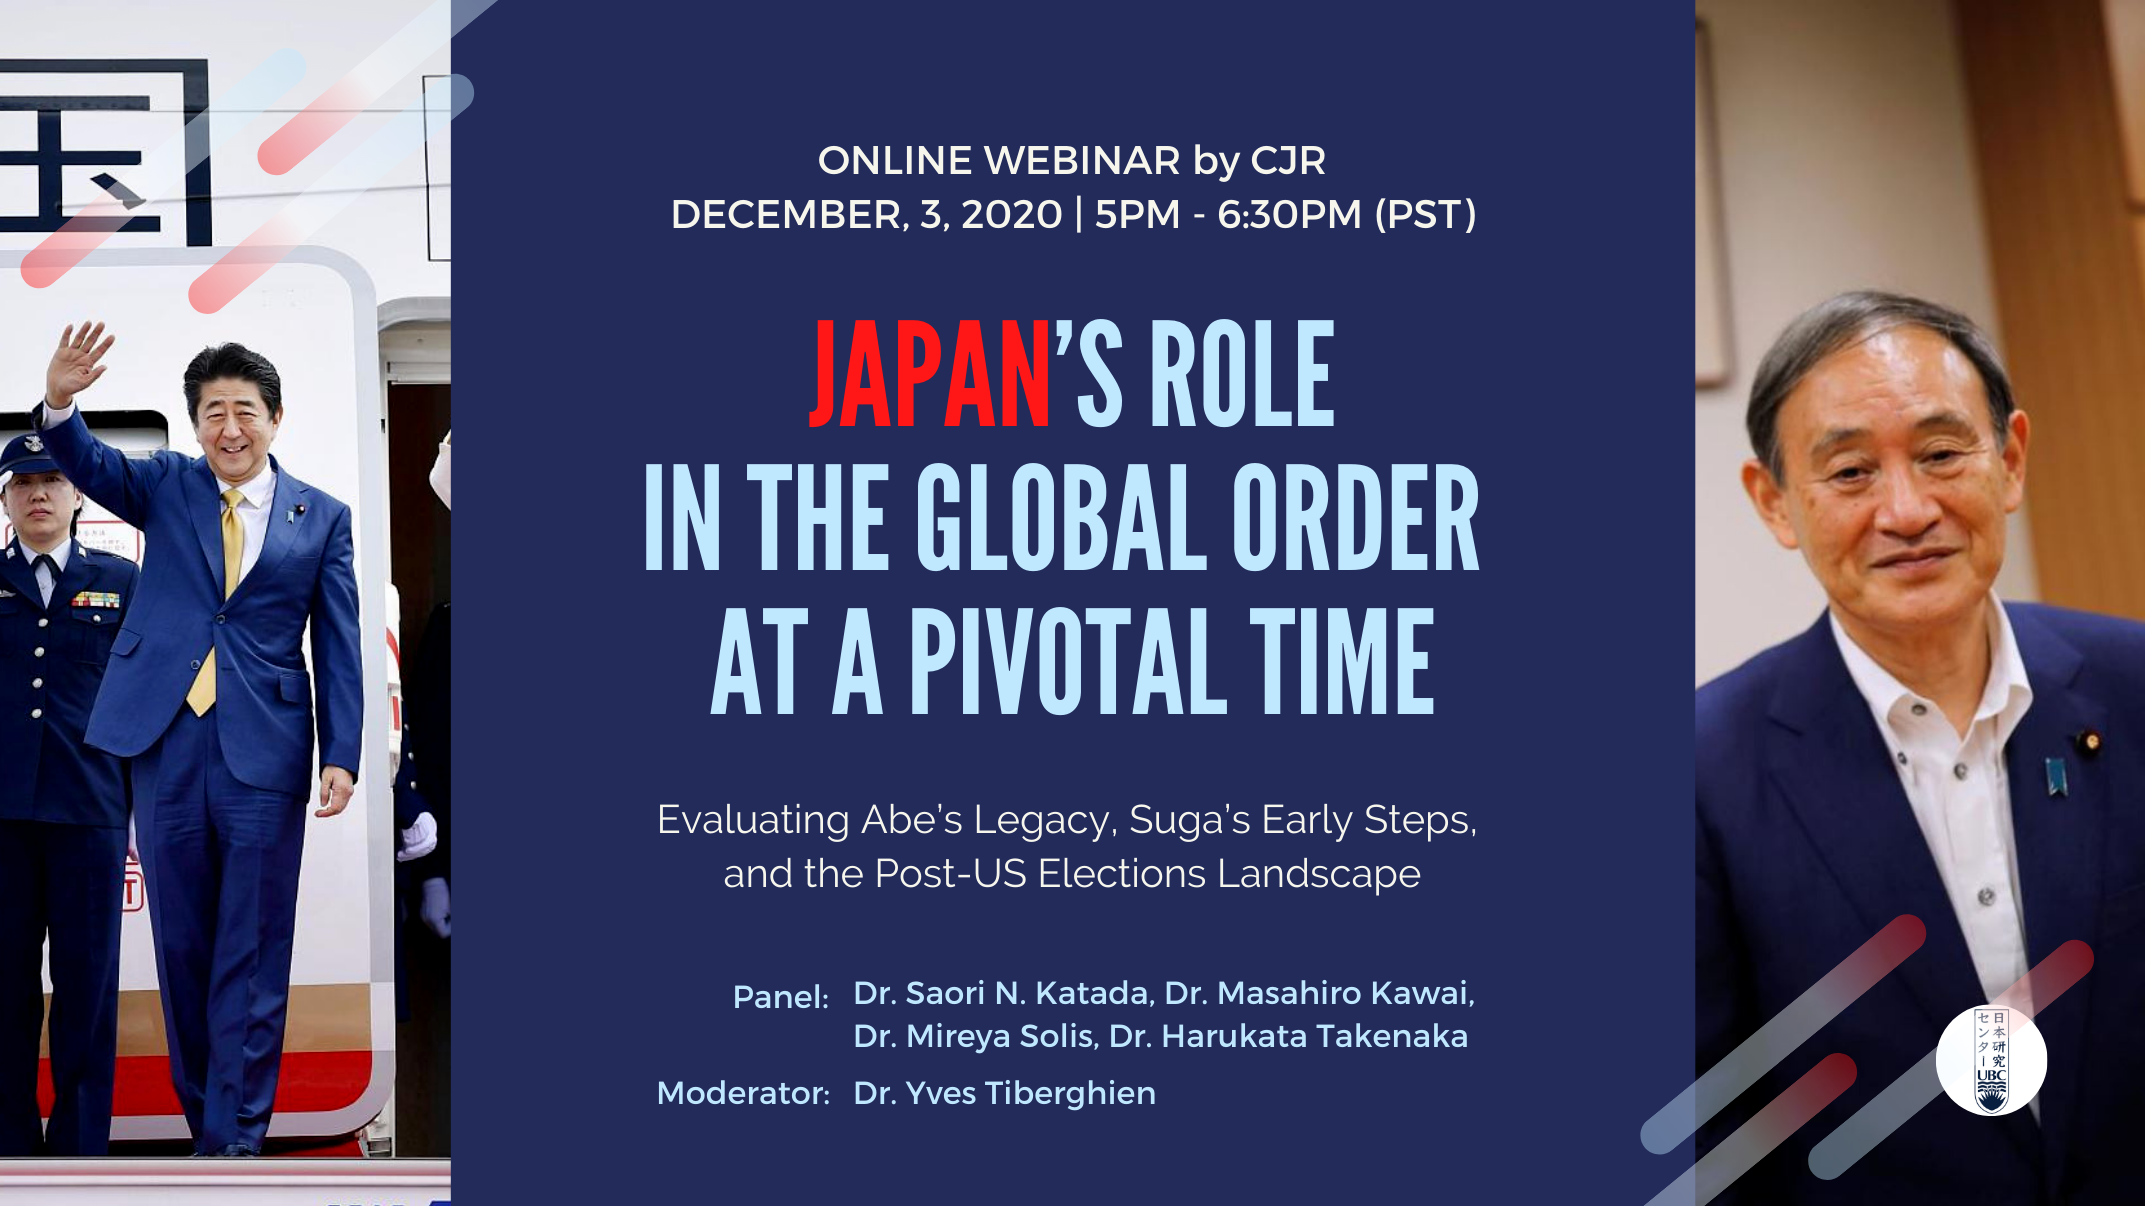 Promotional image of the event on December 3, 2020 at 5PM (PST). Title: Japan's Role in the Global Order at a Pivotal Time: Evaluating Ave's Legacy, Suga's Early Steps, and the Post-US Elections Landscape.